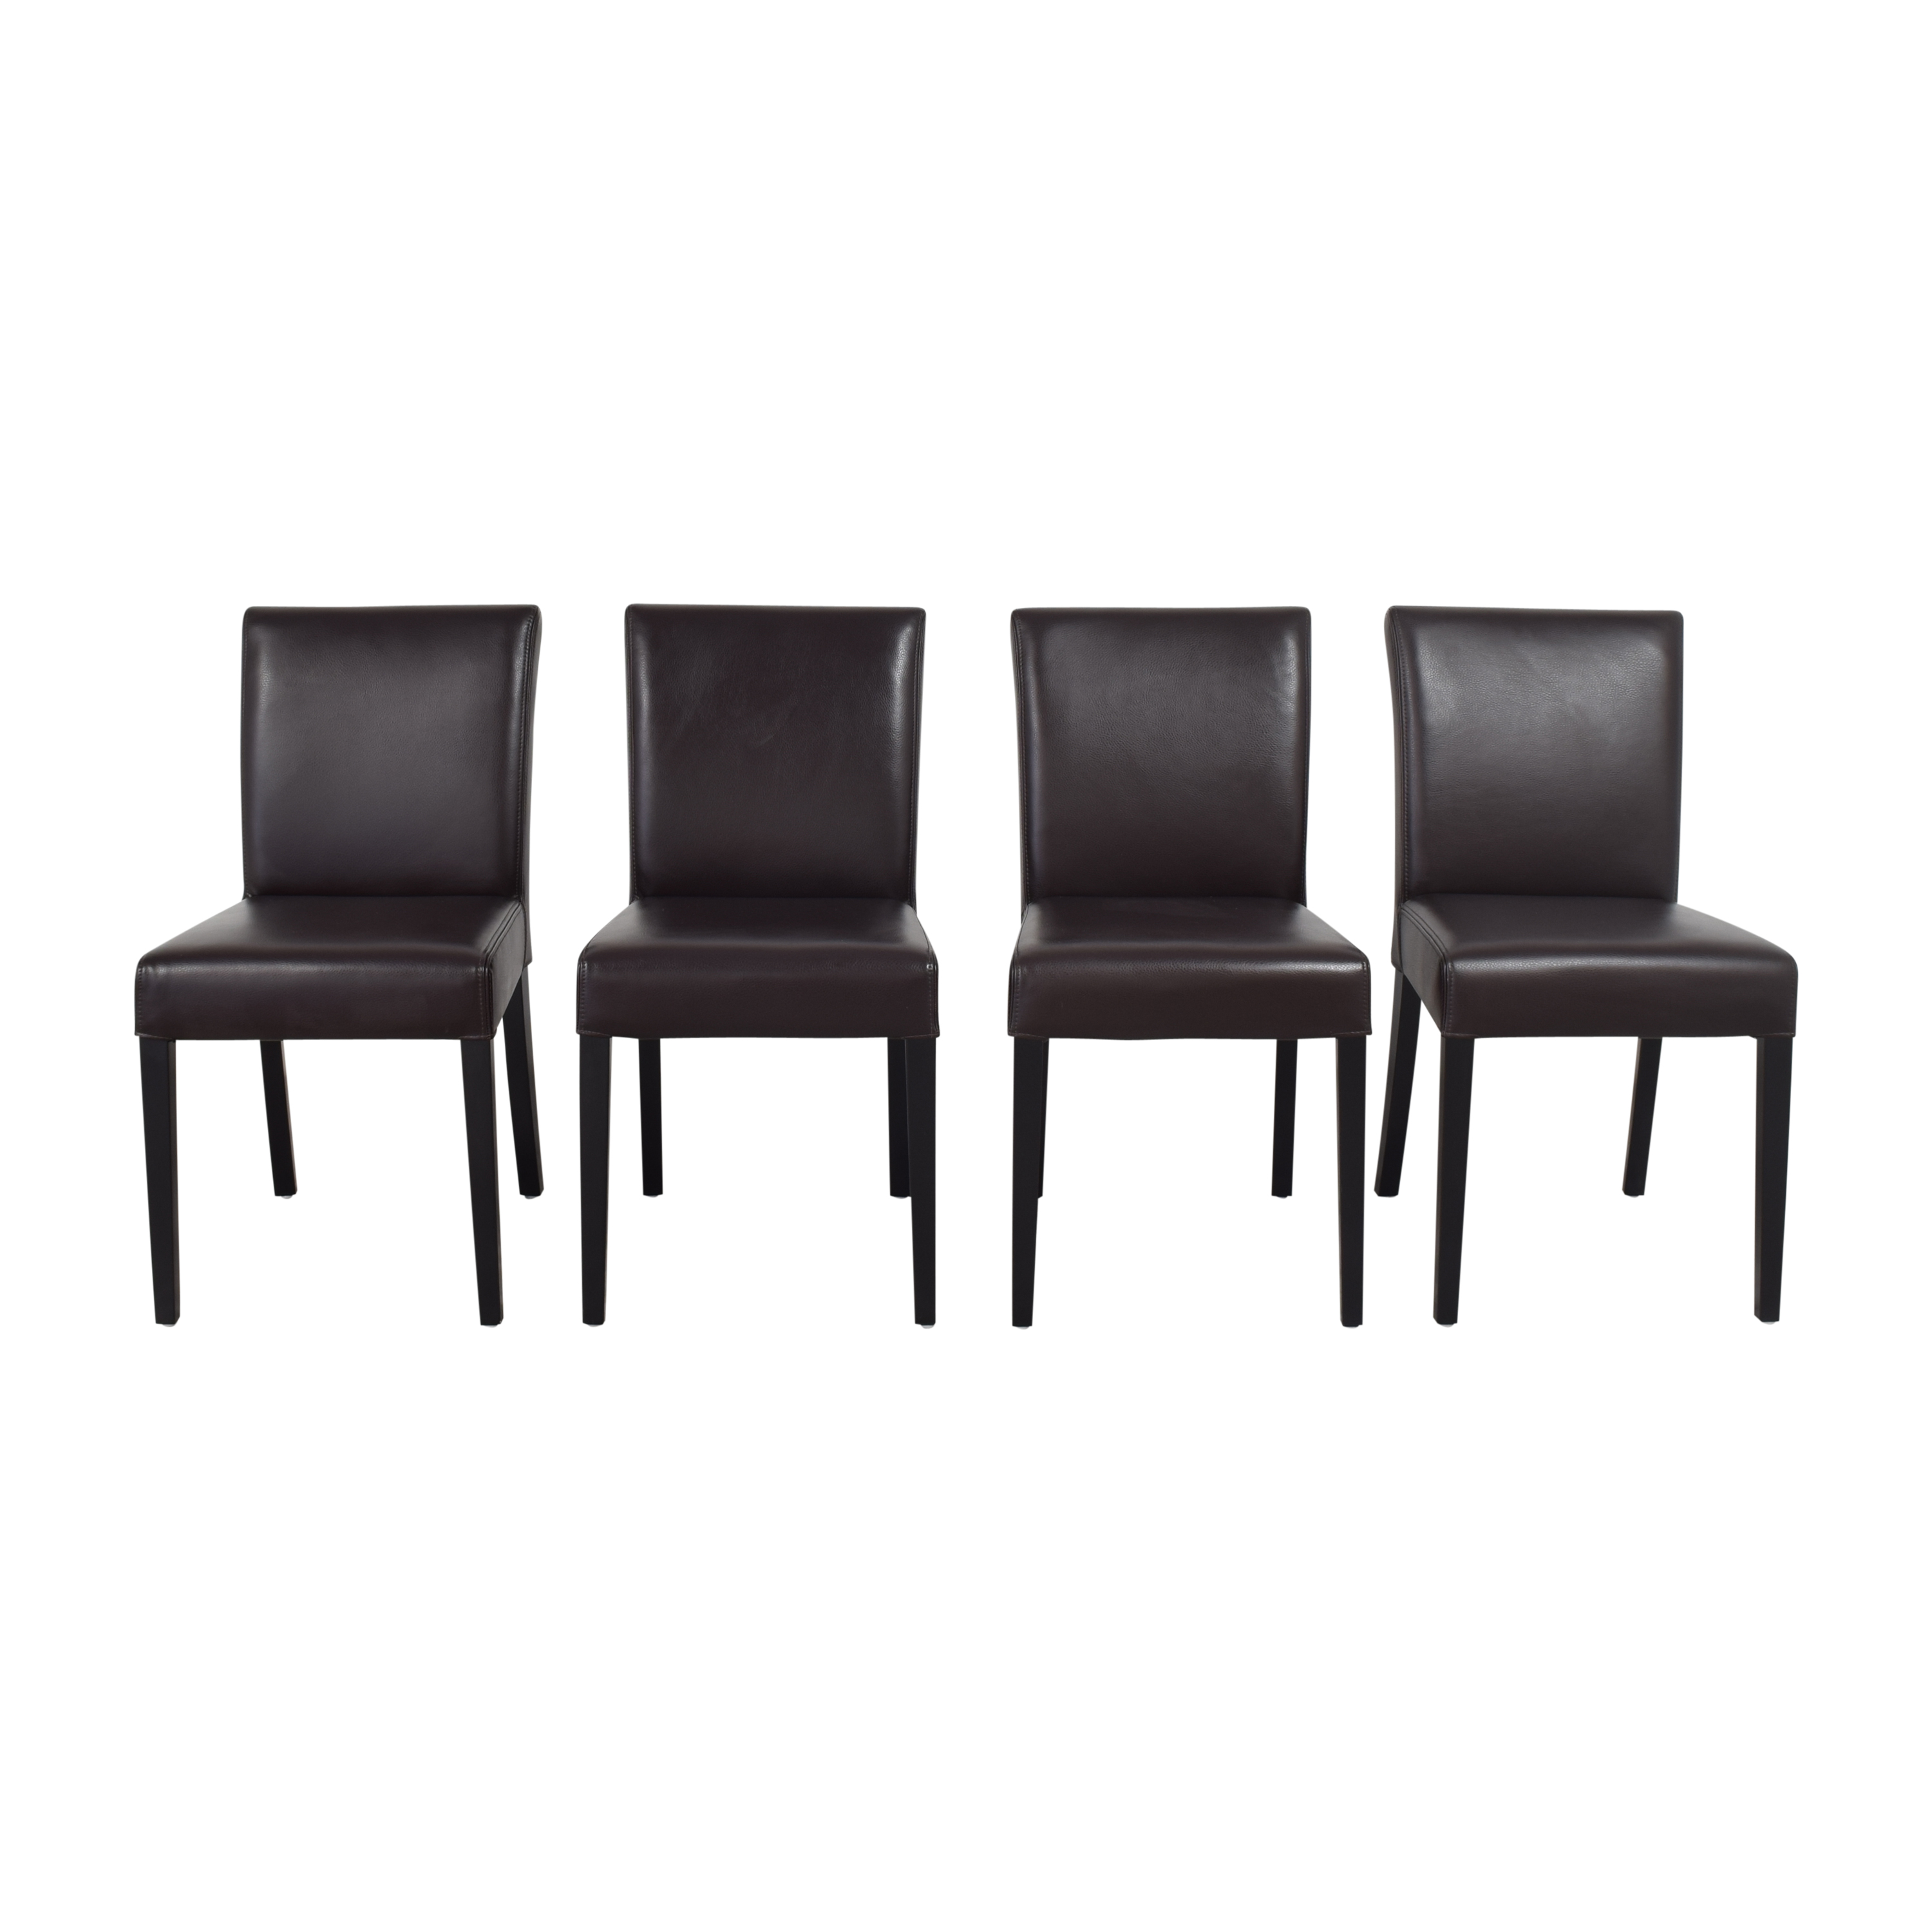 Crate & Barrel Crate & Barrel Lowe Dining Chairs discount